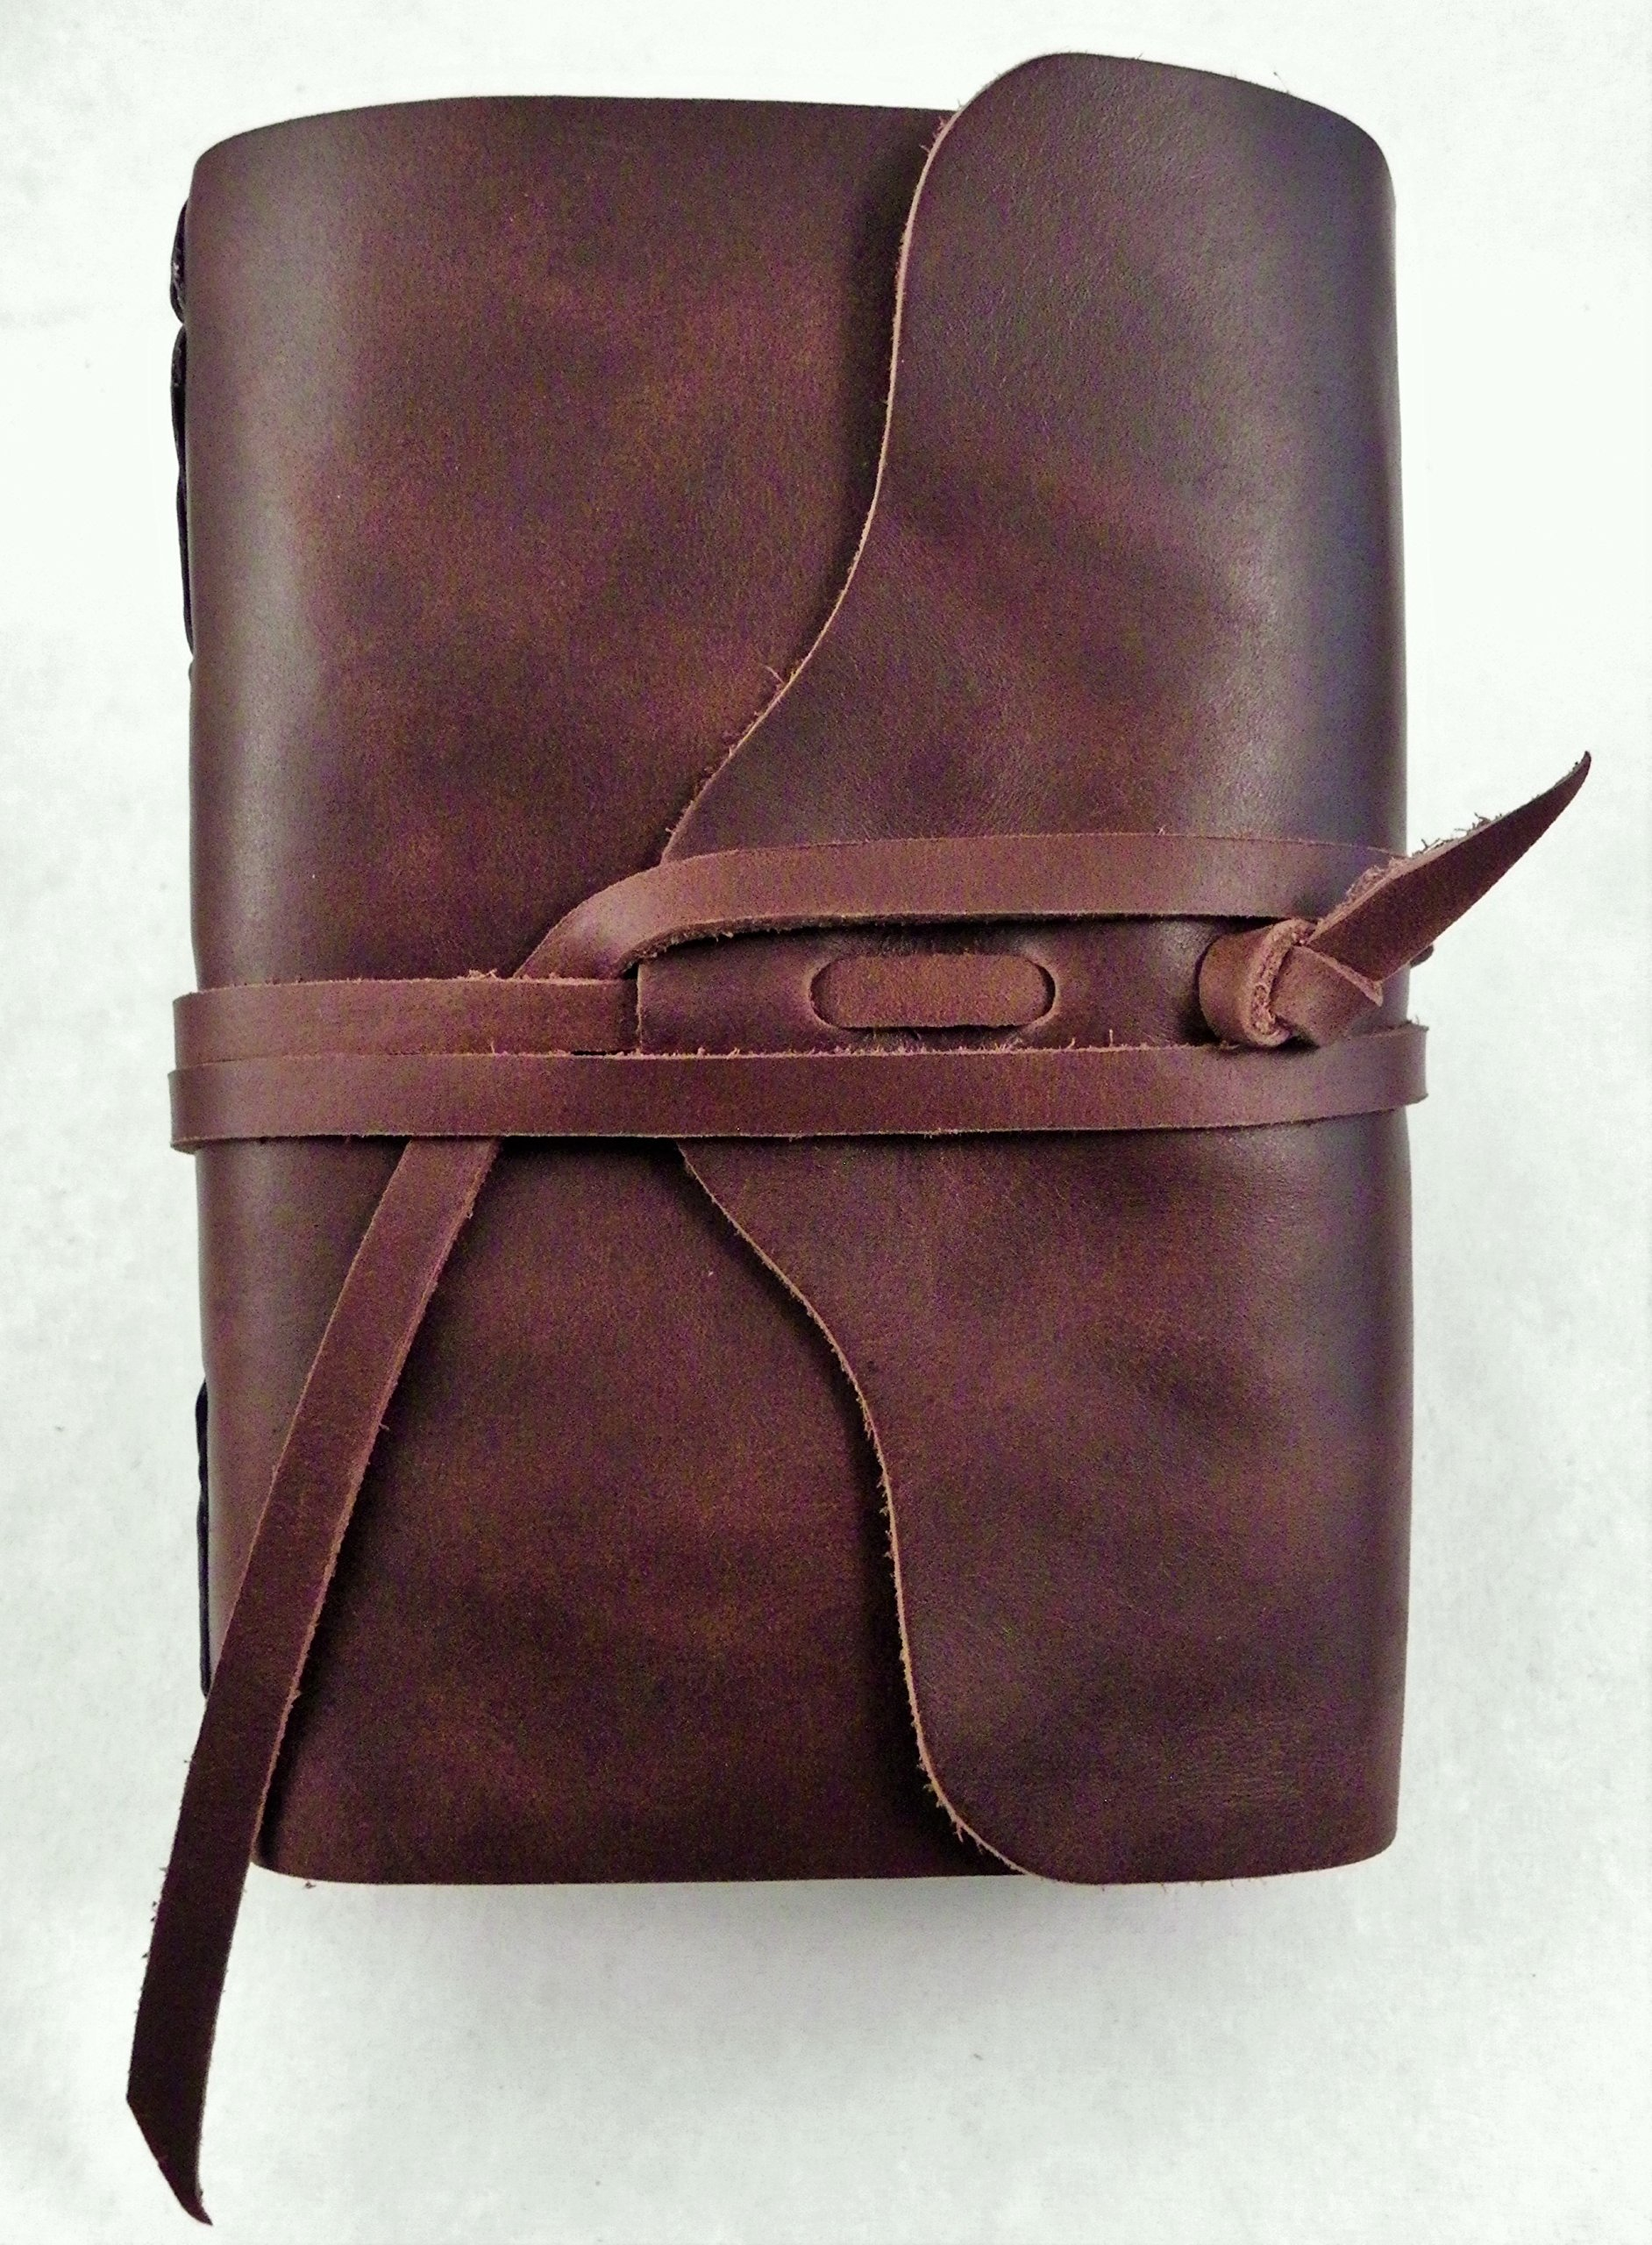 No.96 Rustic Handmade 4x6 Leather Photo Album by Rogue Journals